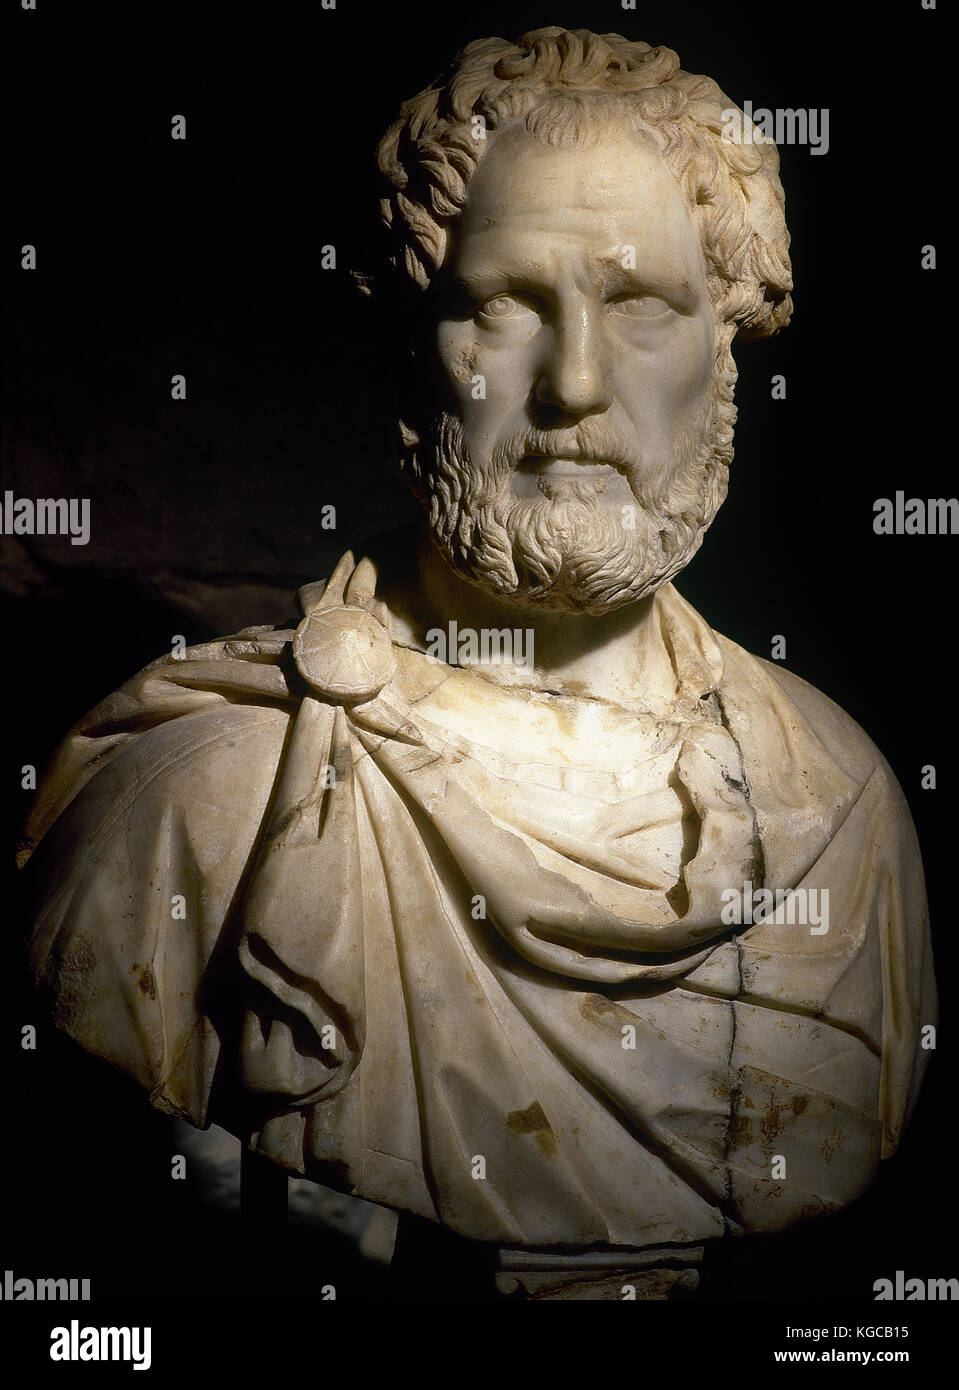 Roman bust probably of Roman emperor Antoninus Pius (86-161 AD). Marble. 2nd century AD. Museum of History of the - Stock Image